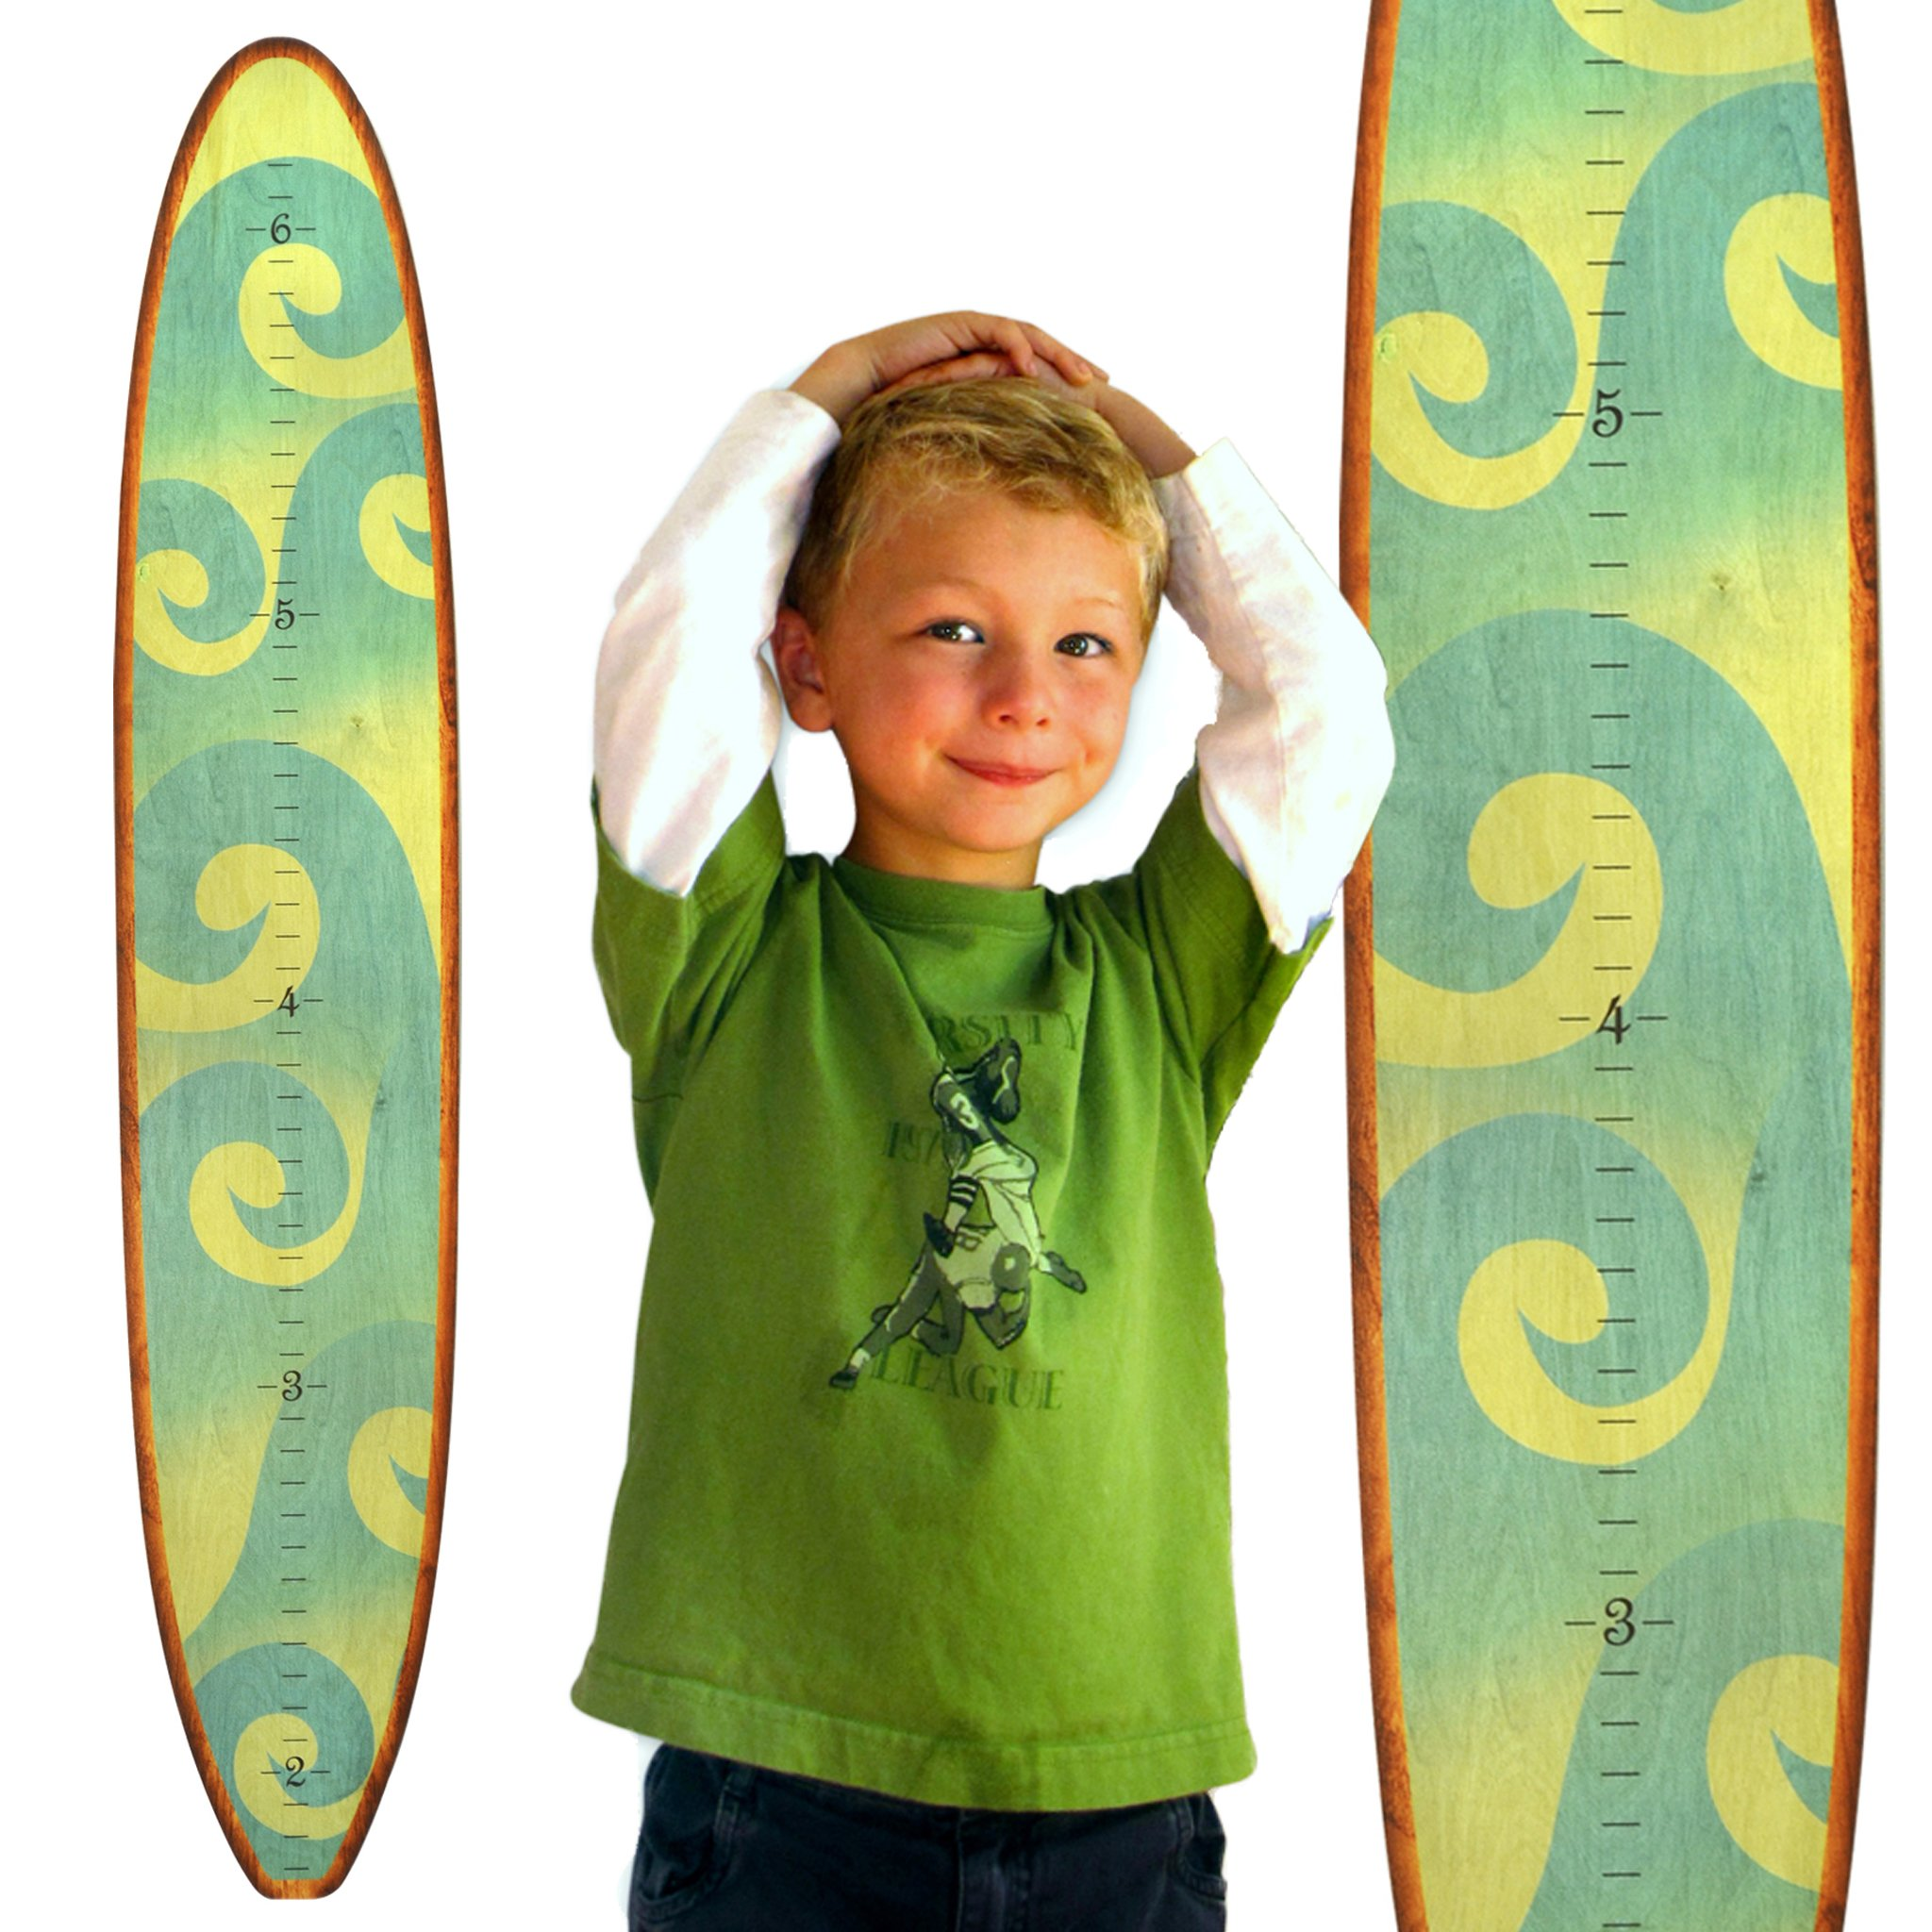 Growth Chart Art | Wooden Surfboard Growth Chart for Boys & Girls | Nursery Wall Decor | Surfboard (The Wave) by Growth Chart Art